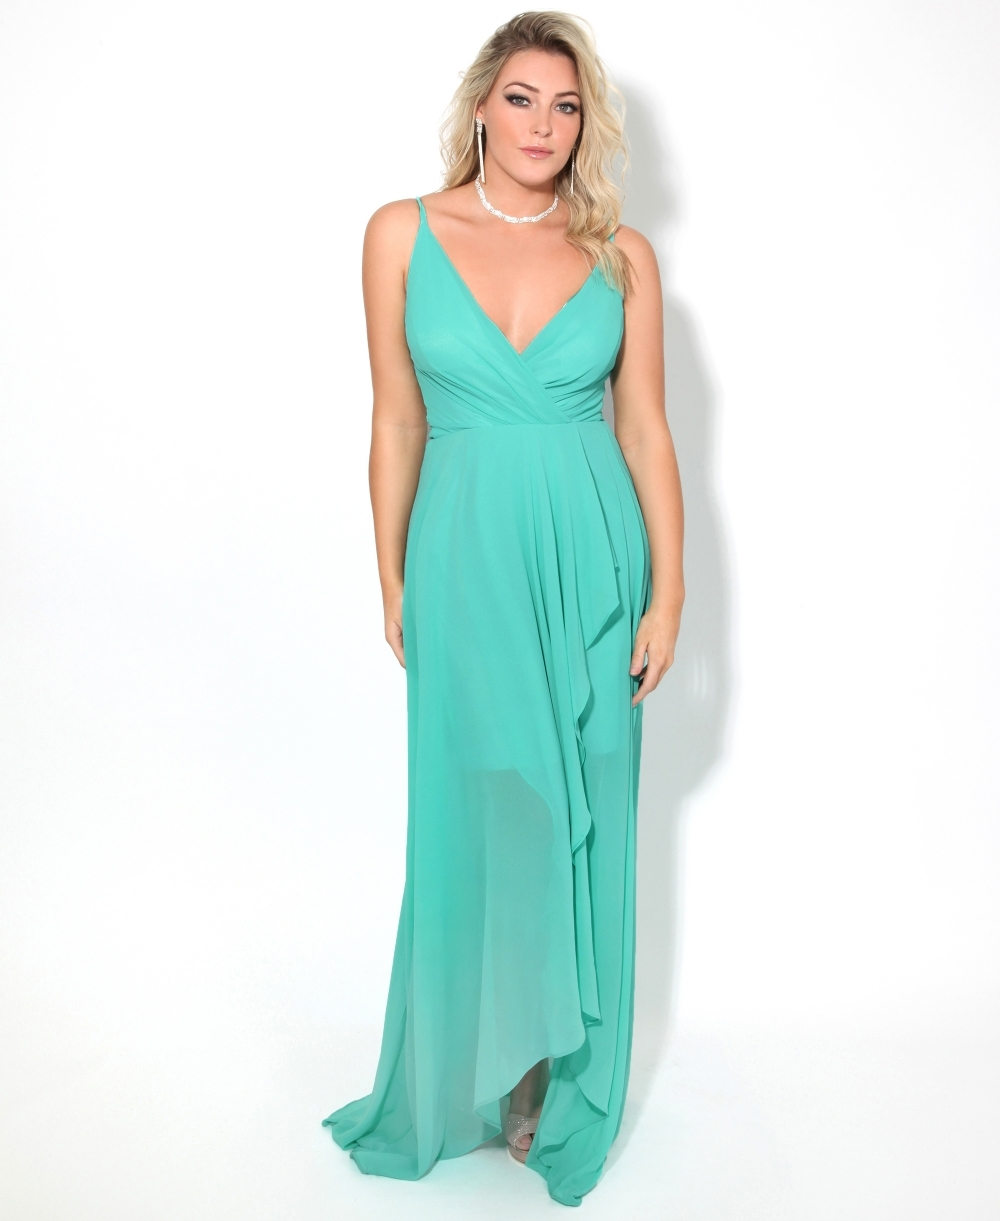 8b80af38fe0 KRISP Slit Front Asymmetrical Maxi Dress